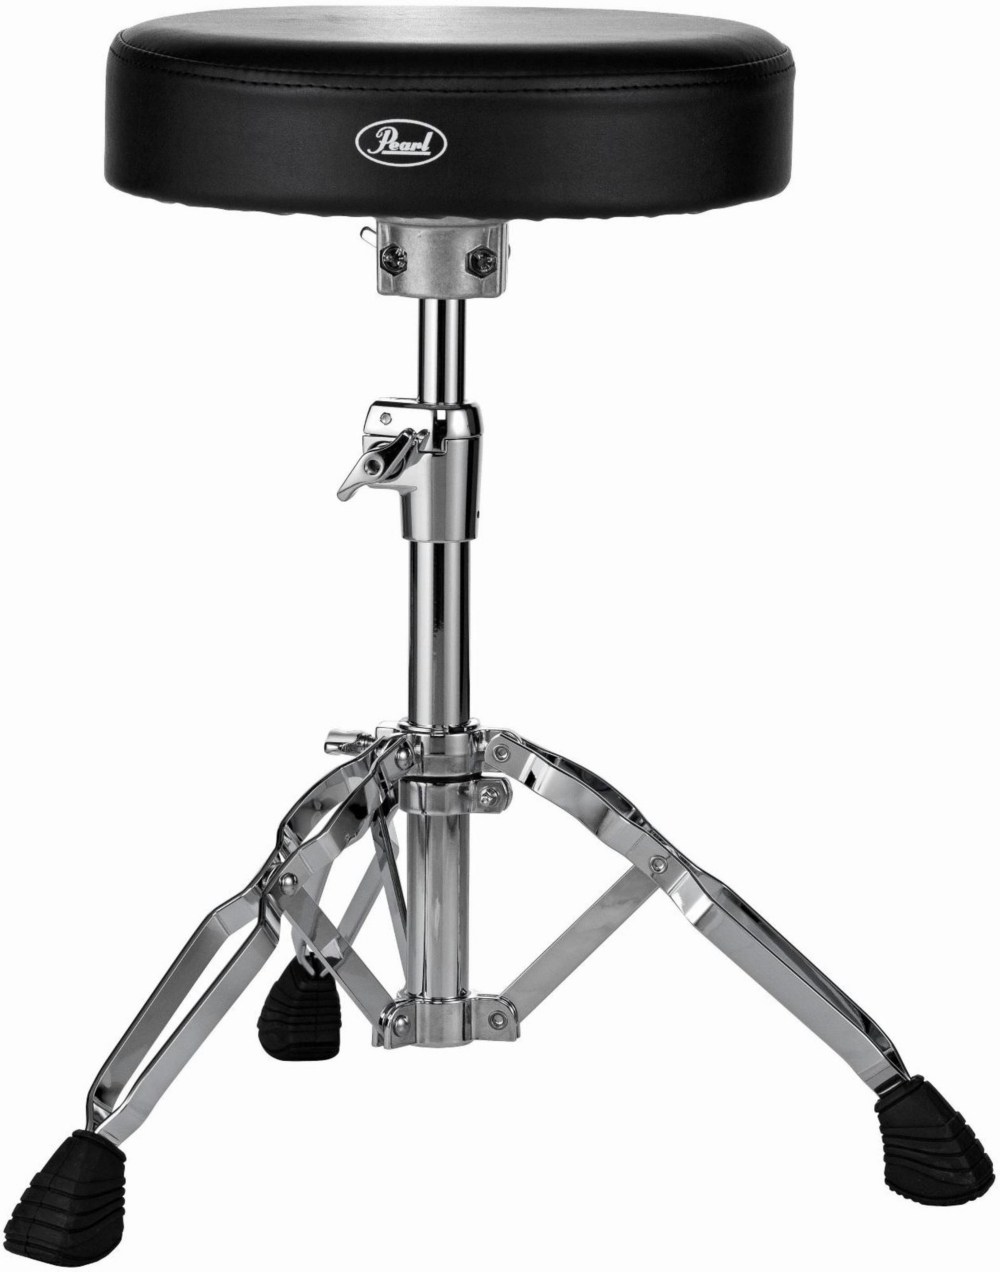 Pearl D930 Drum Throne by Pearl